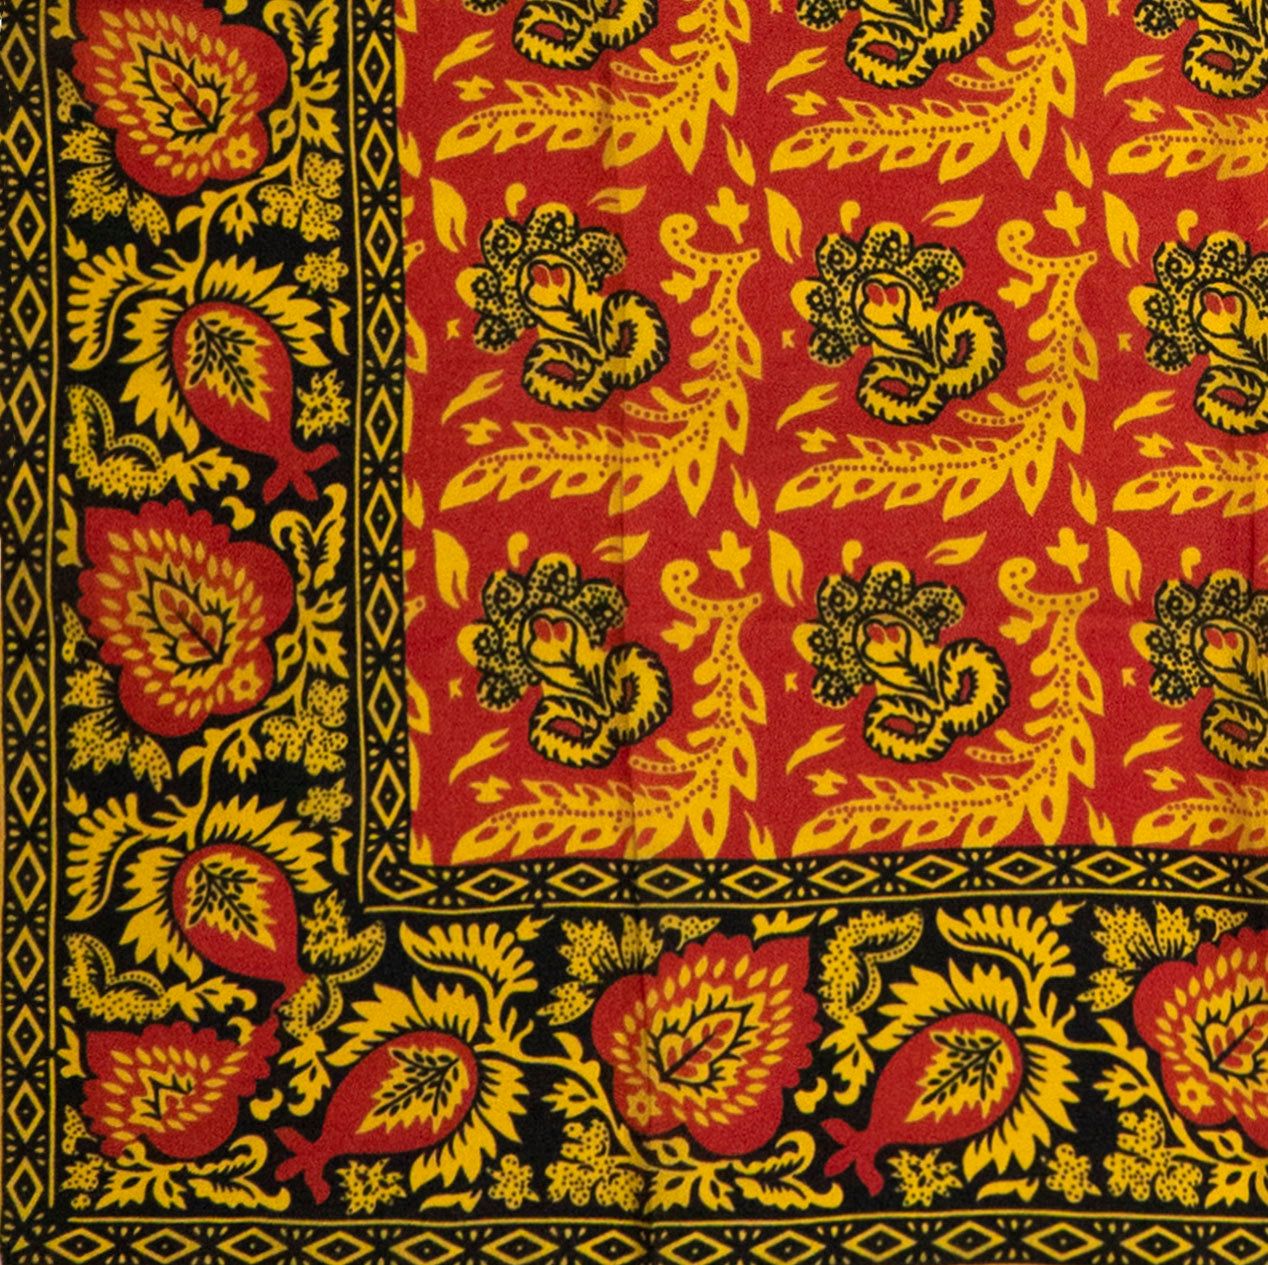 Red, Yellow & Black Flowered Silk Handkerchief